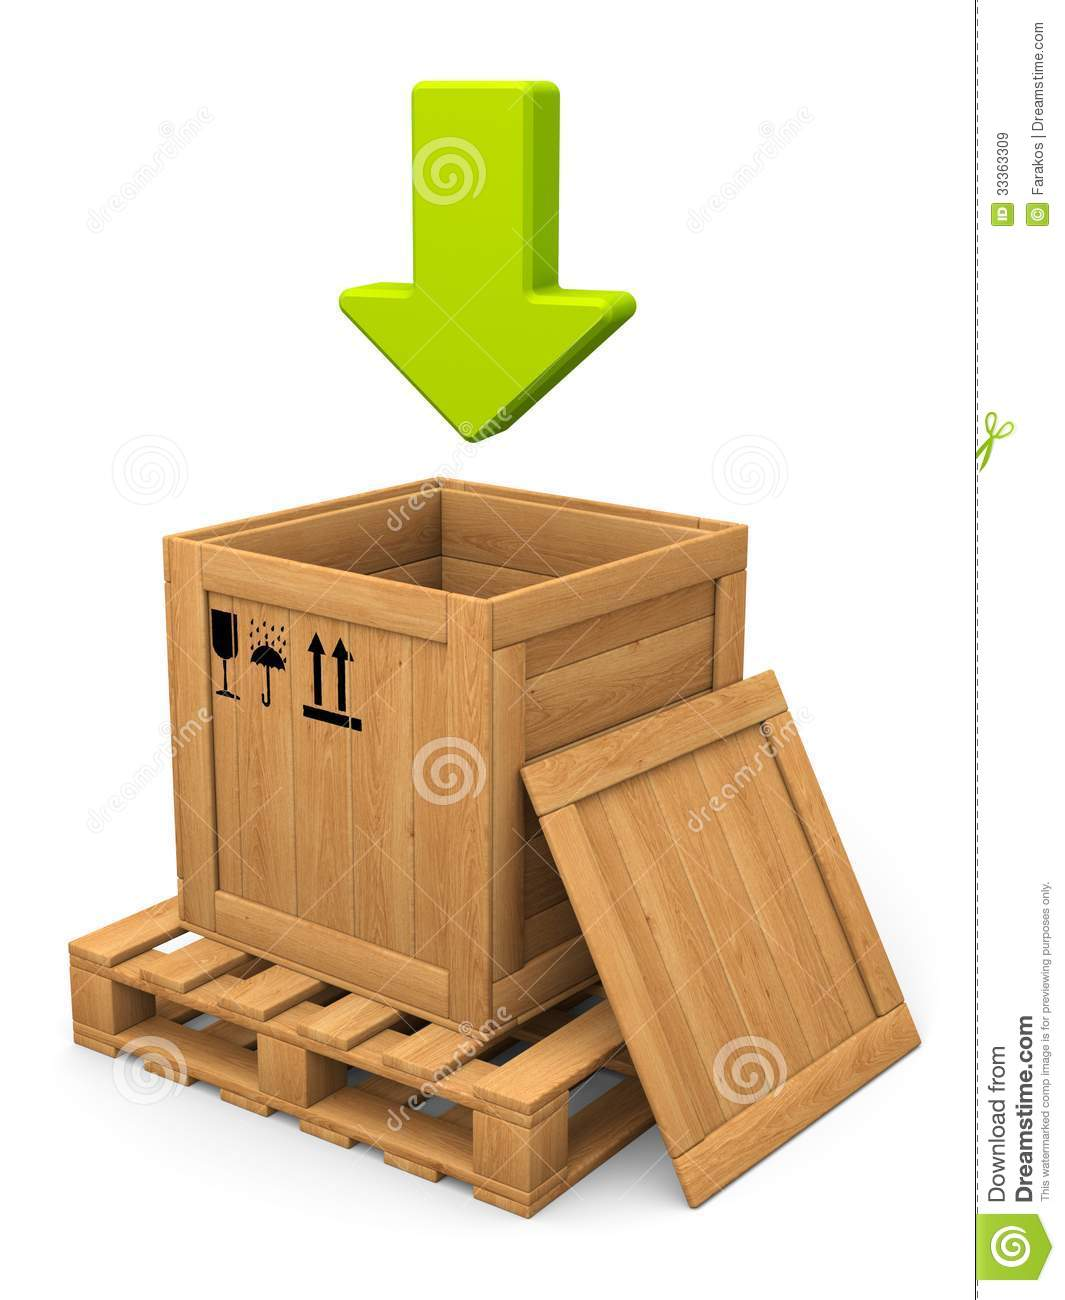 Open Wooden Box And Green Arrow. Download Concept. Royalty